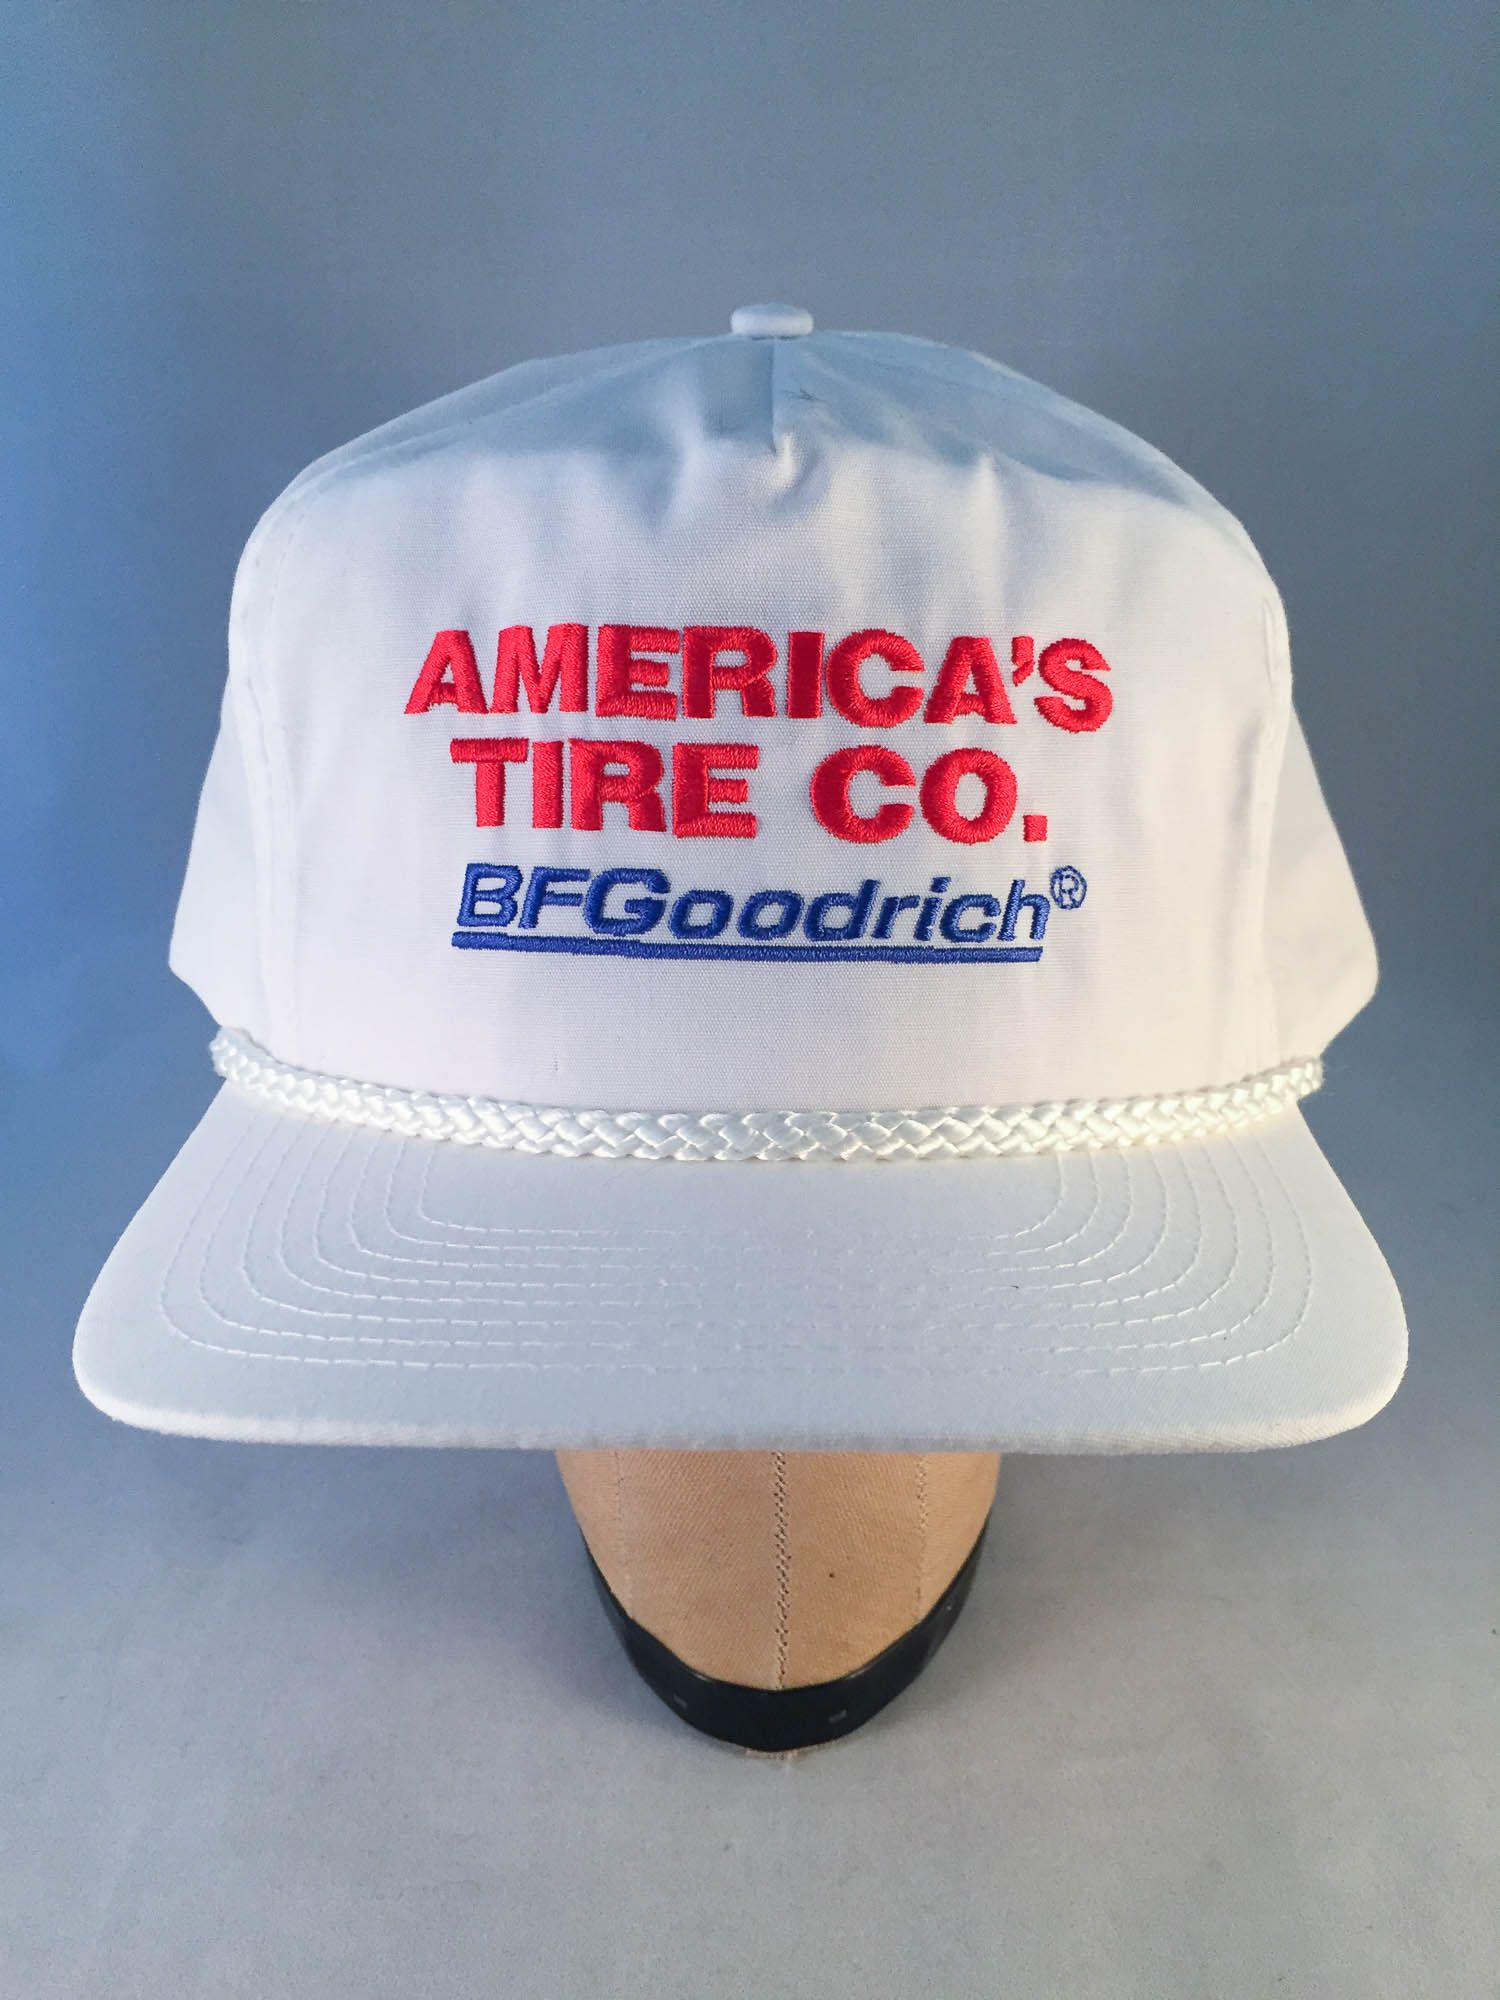 newest collection 64cc3 92c3e BF Goodrich America s Tire Co. Snapback Hat on Blamm.com  BFGoodrich   TruckerHat